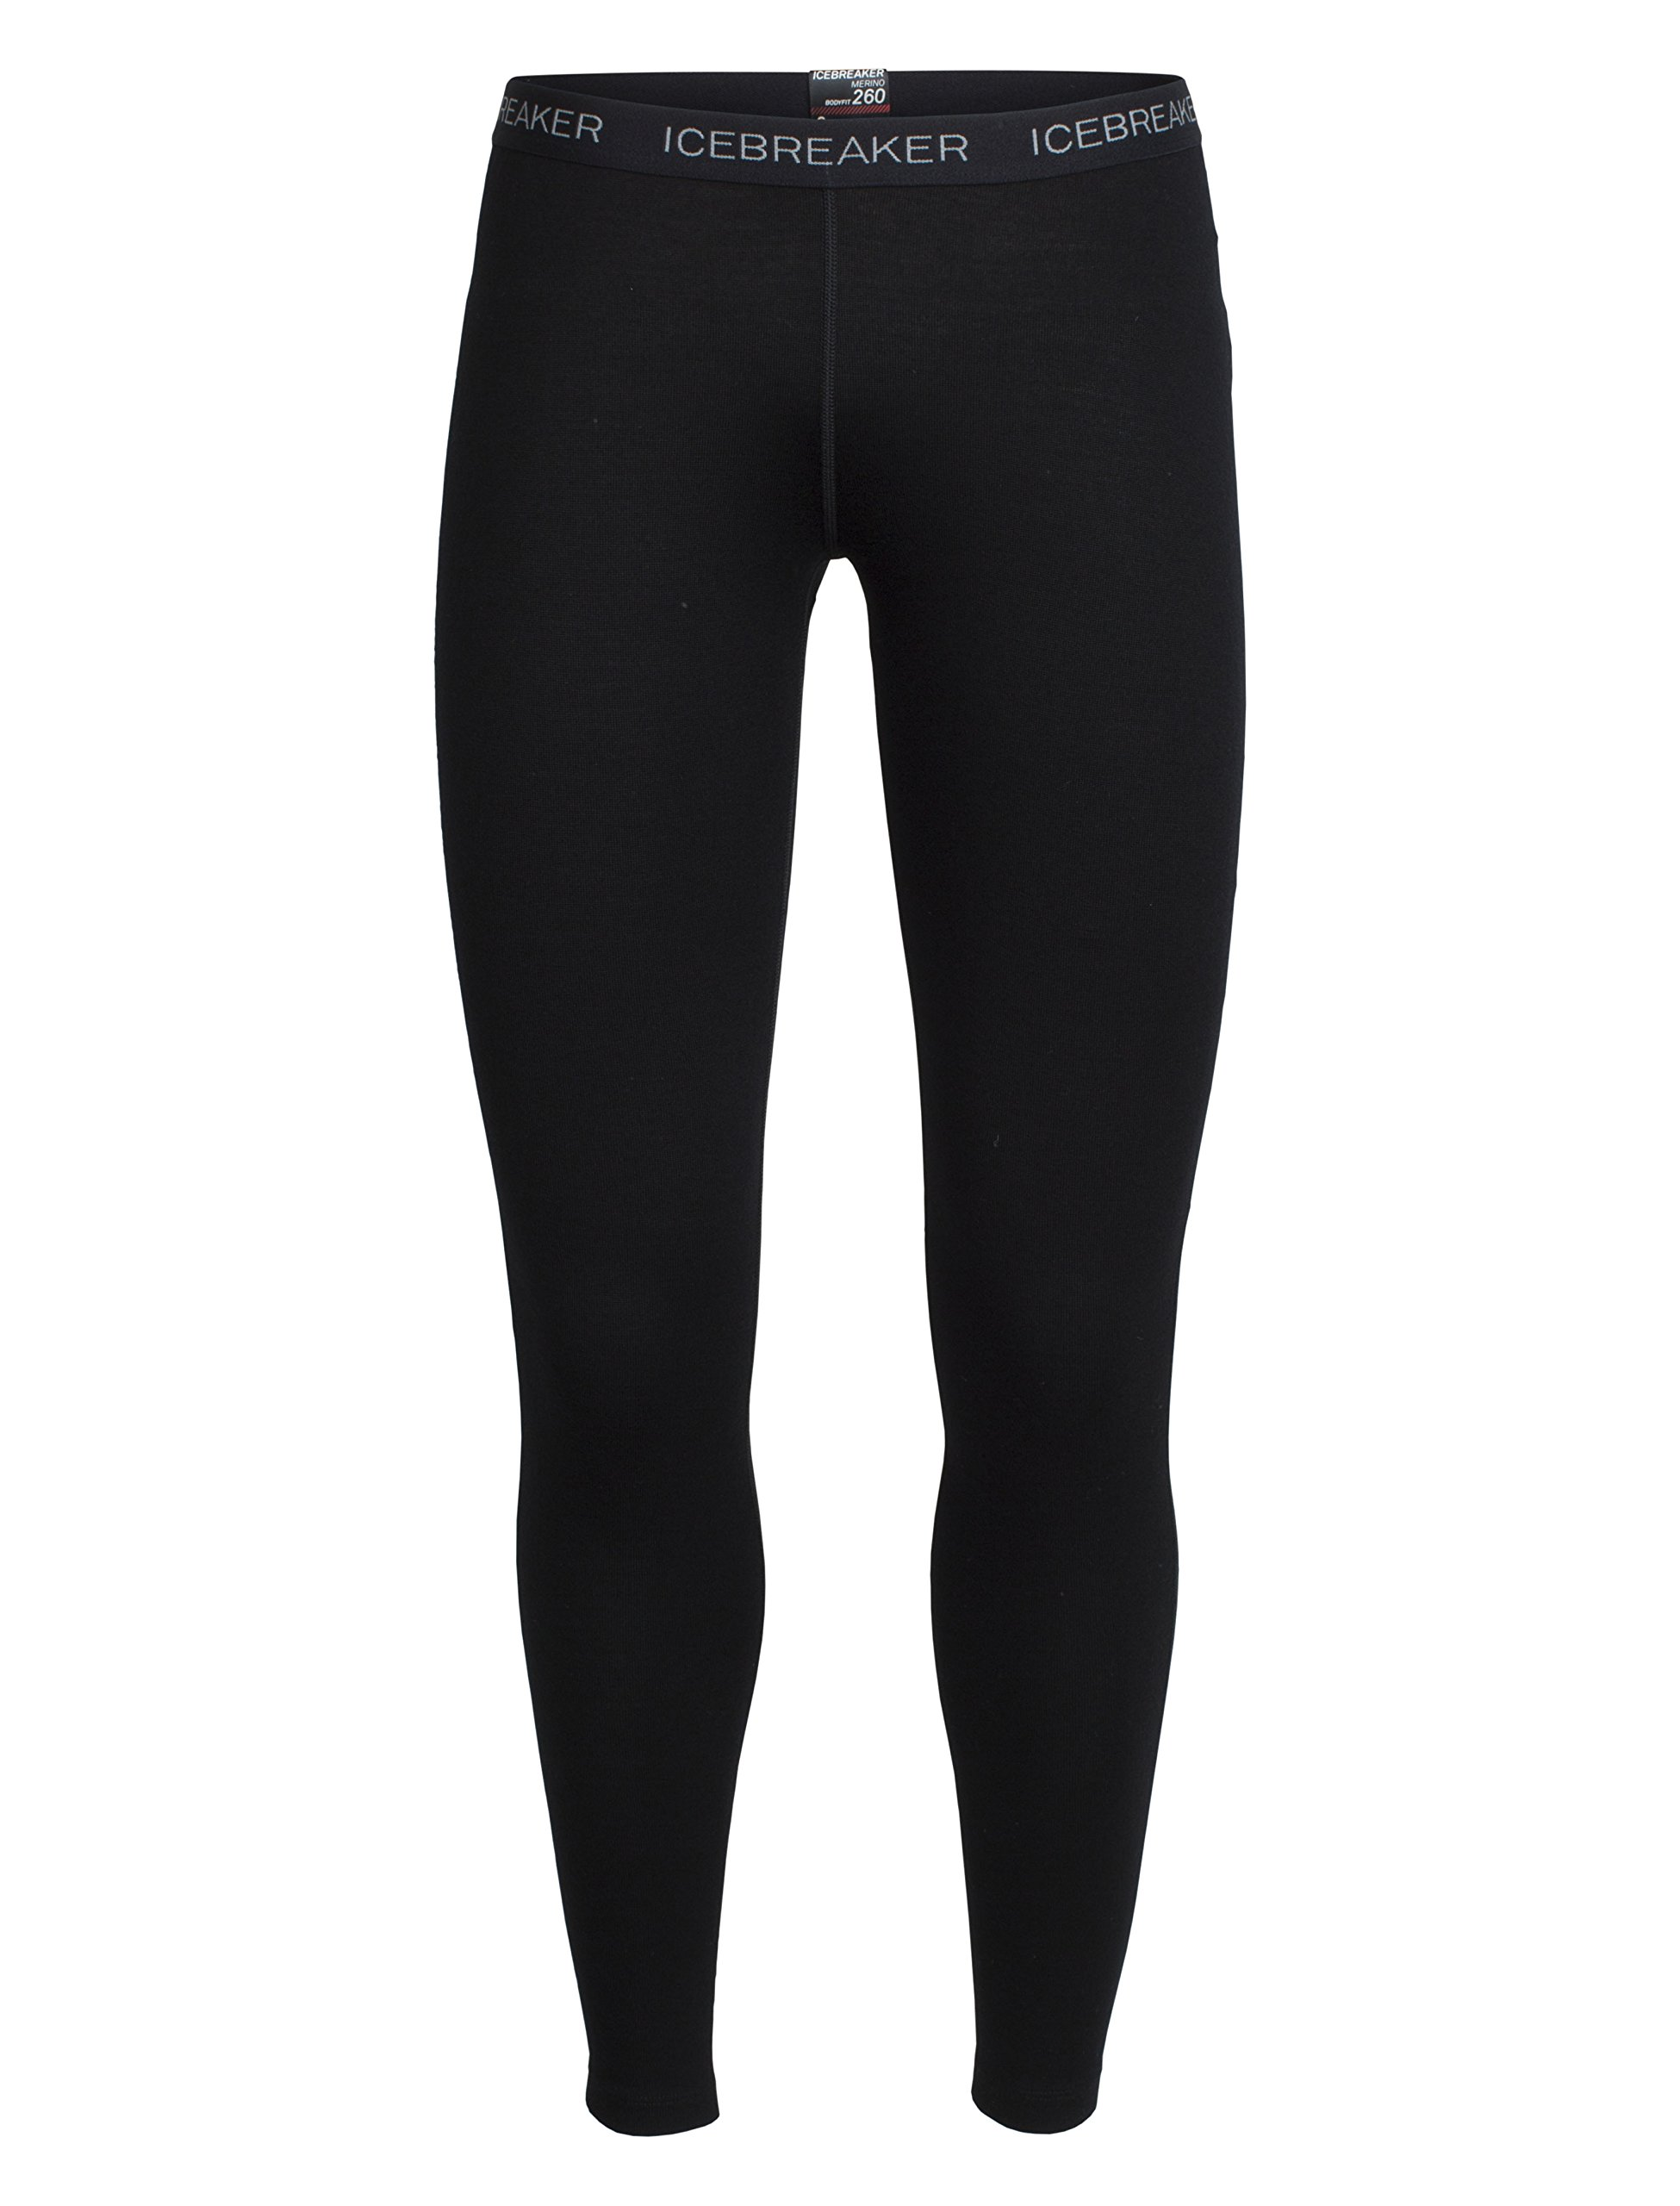 Icebreaker Merino Women's Vertex Leggings, Black, Medium